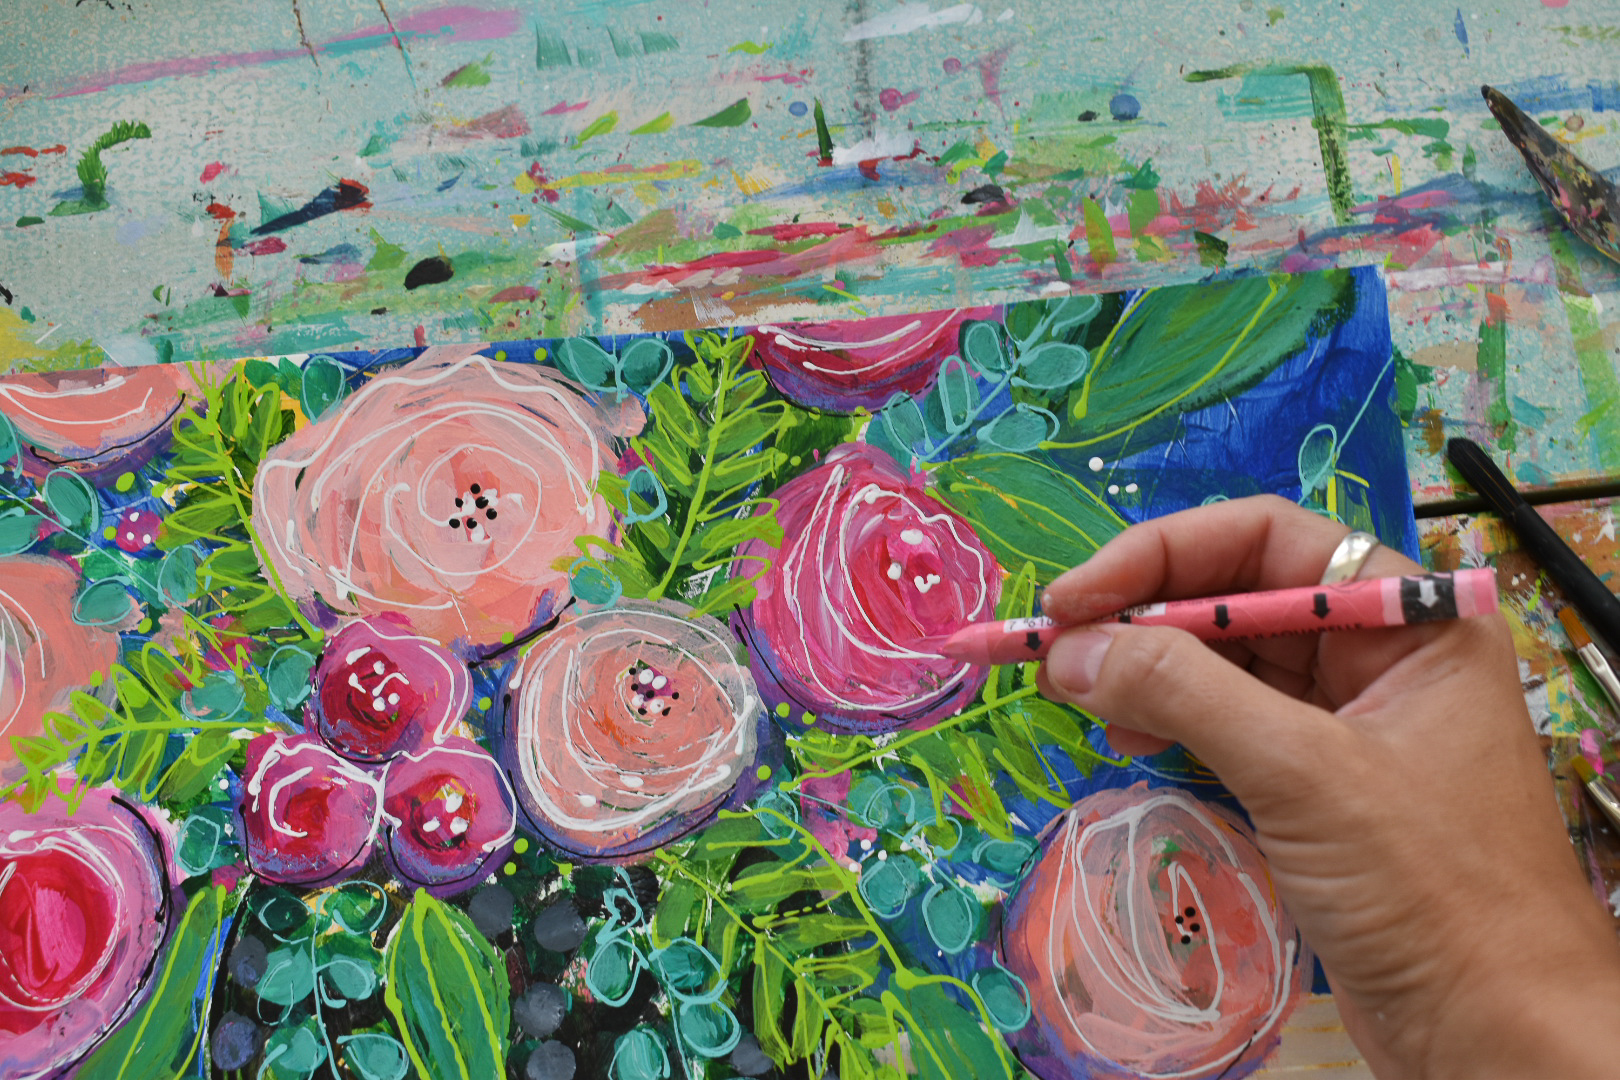 bohopainting_colorfulflowers_daisyfaithart_6.jpg